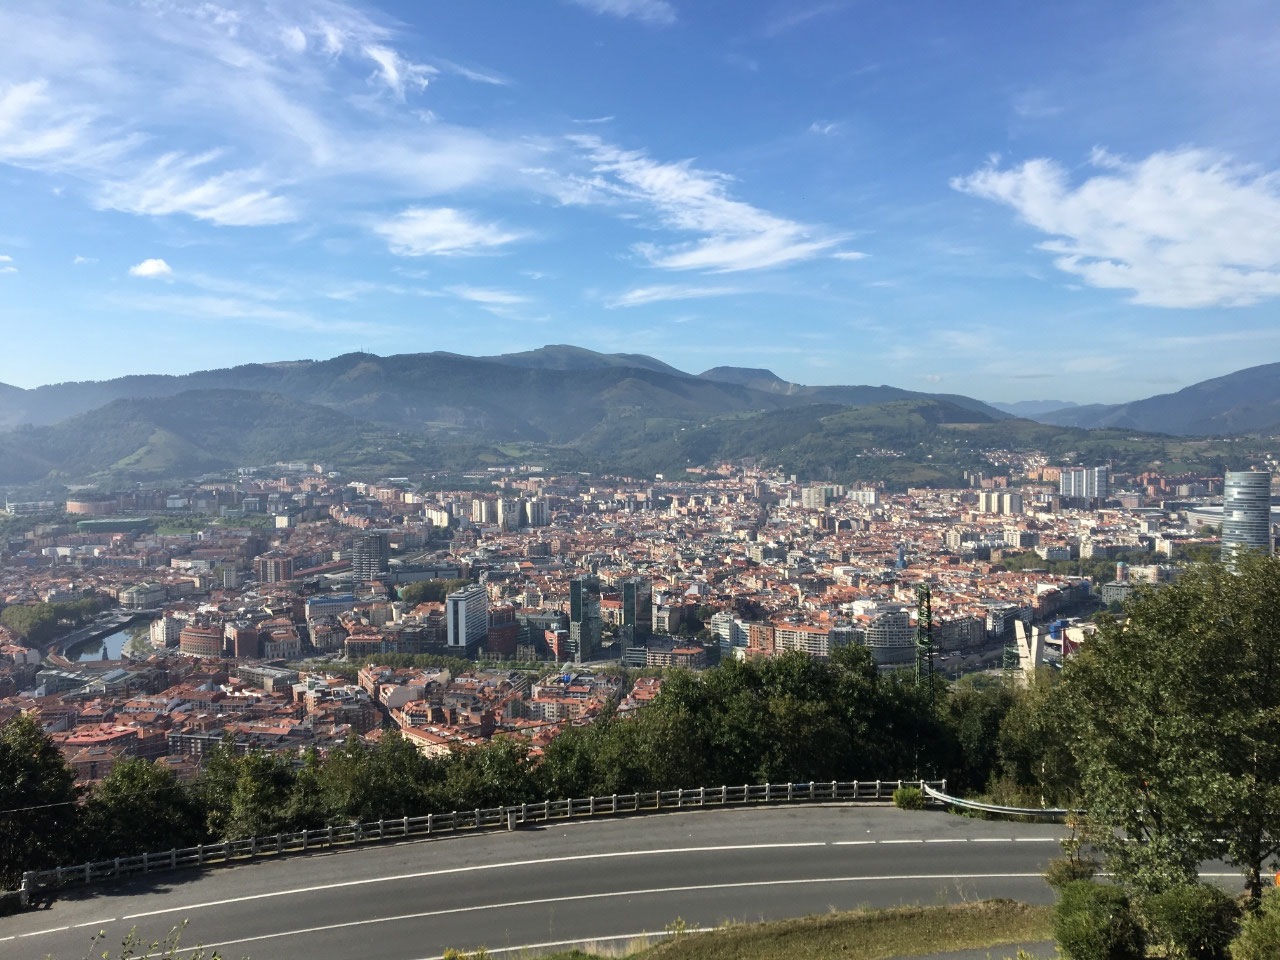 Bilbao from above